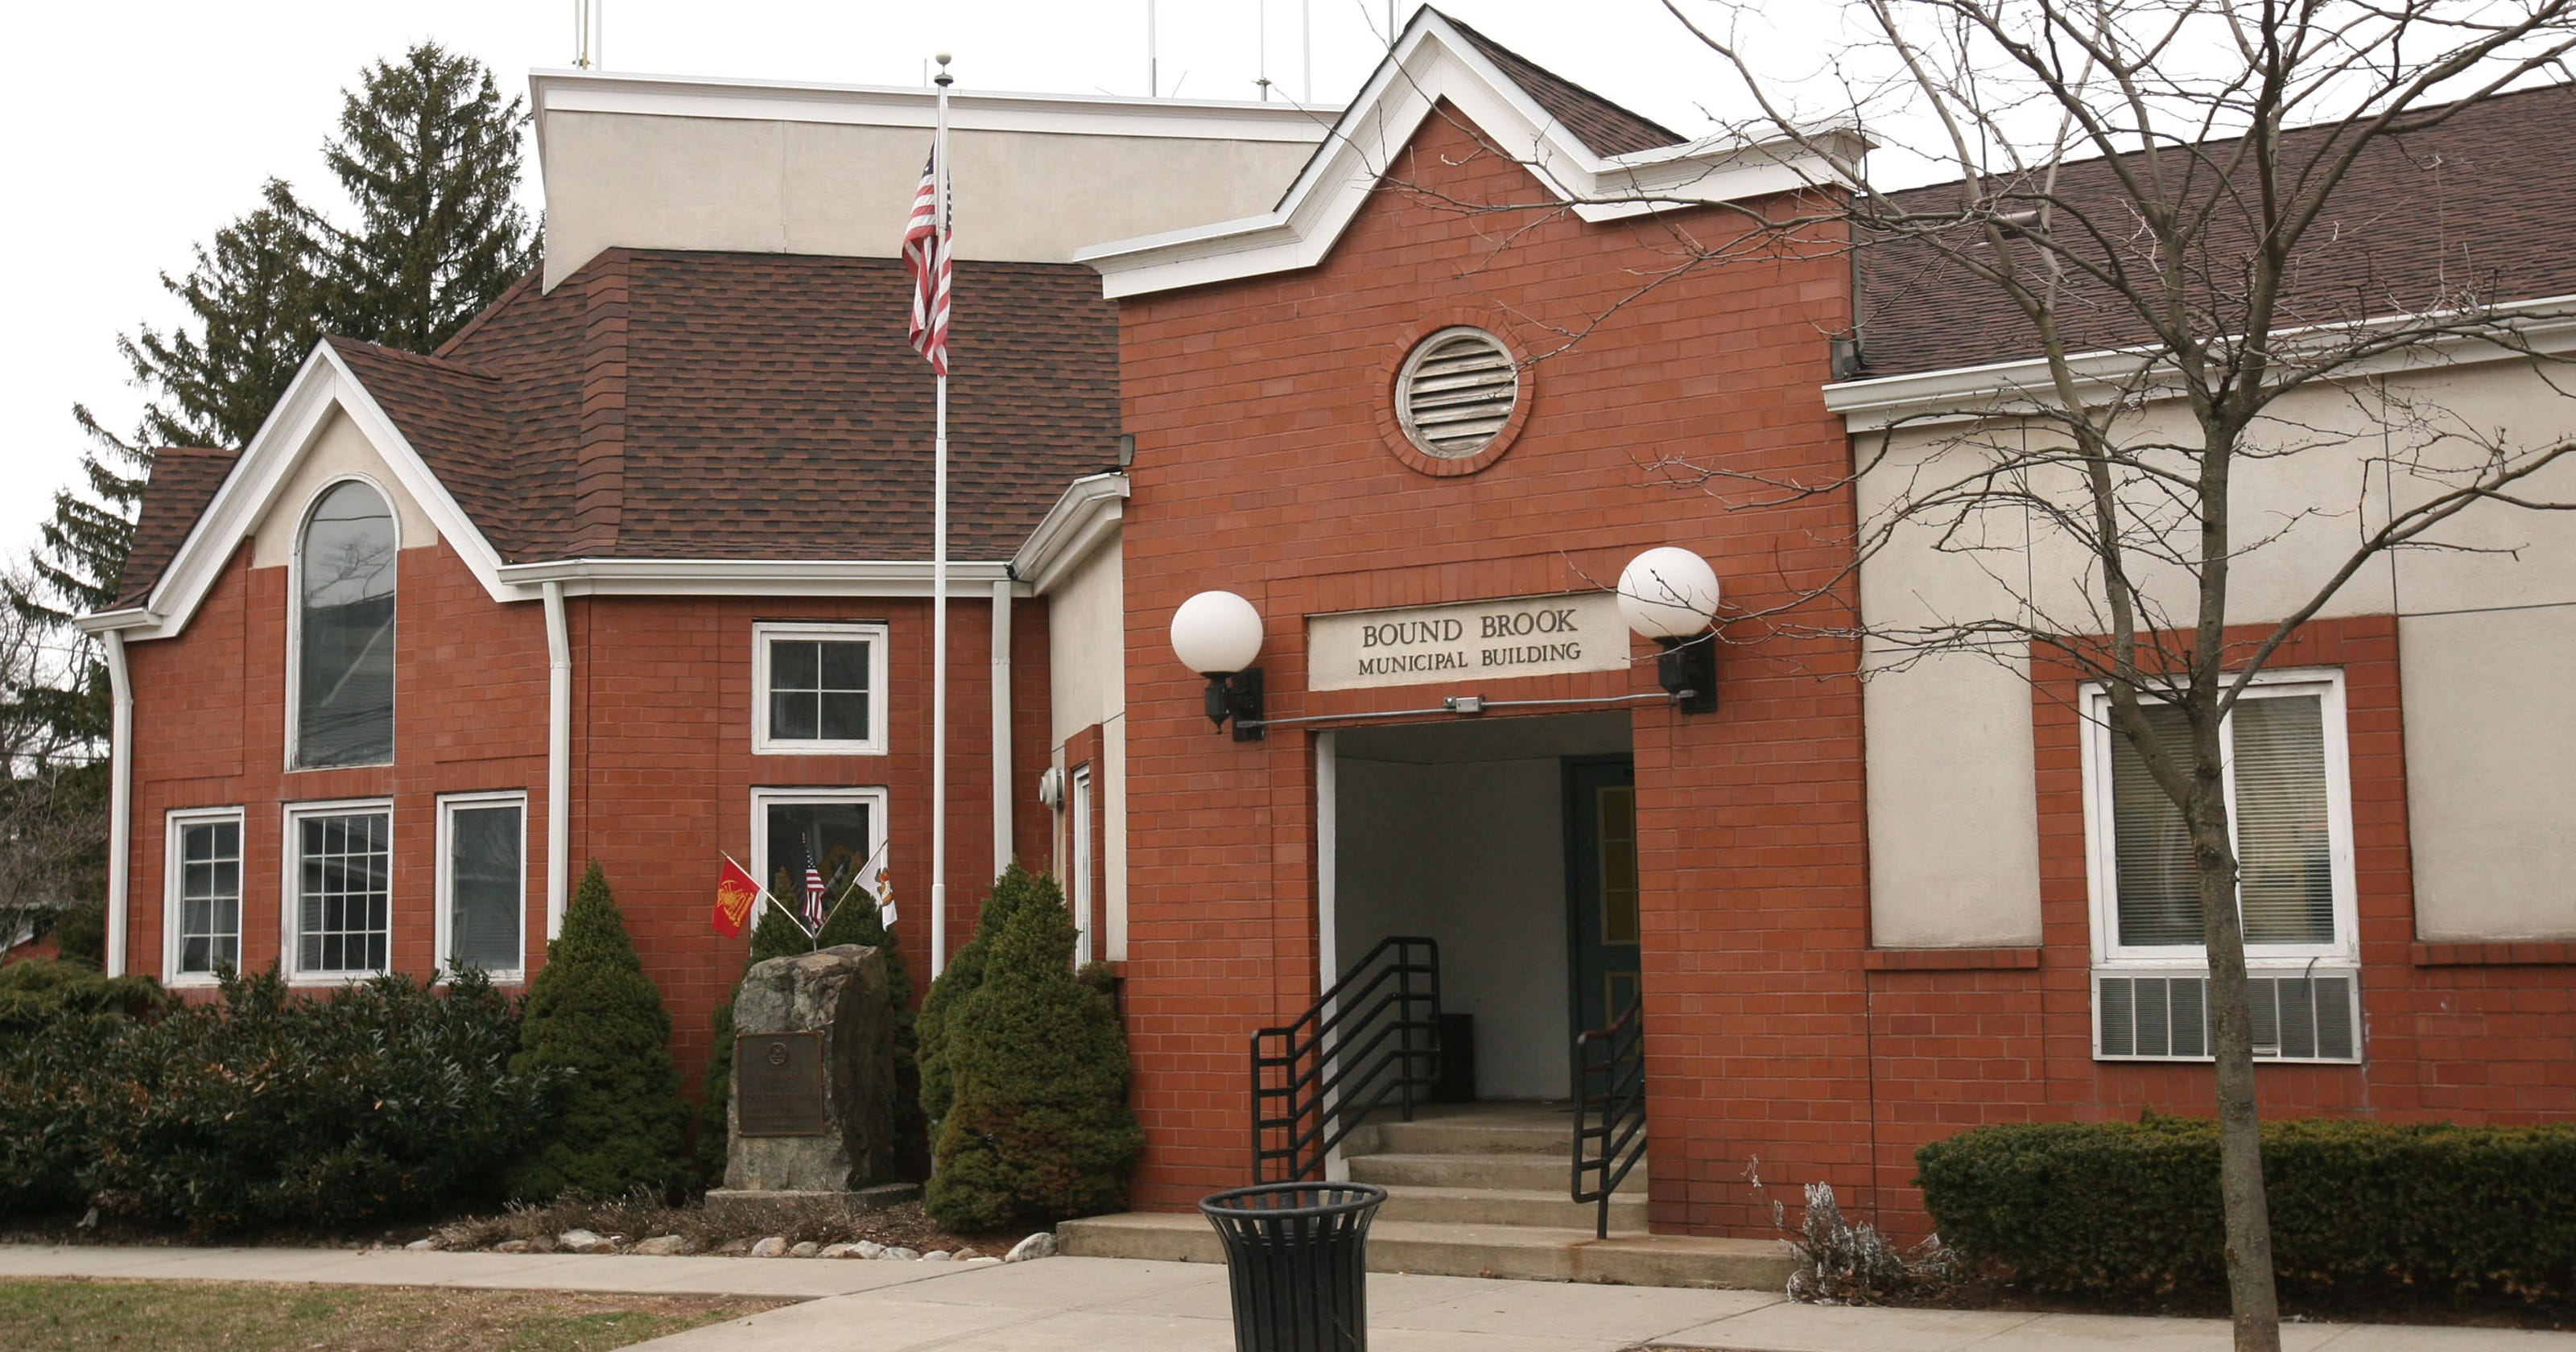 Bound Brook mayor to veto salary for himself, council members